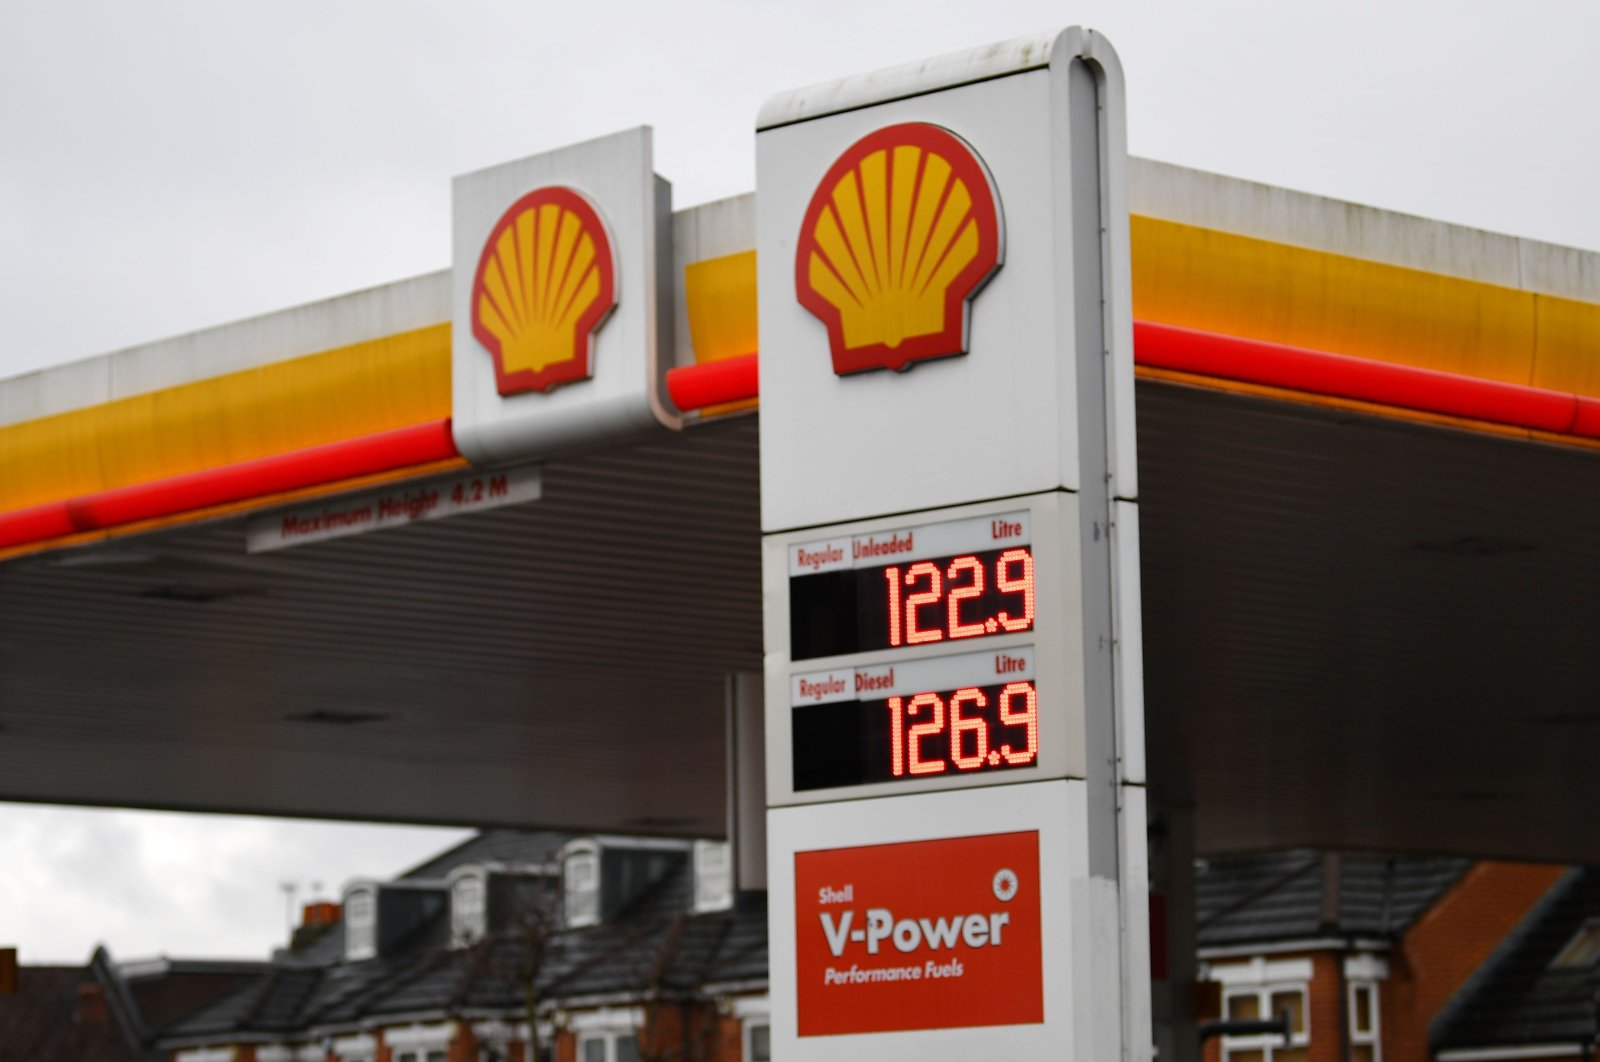 Shell logos can be seen at a service station in London, the U.K., Feb. 4, 2021. (AFP Photo)